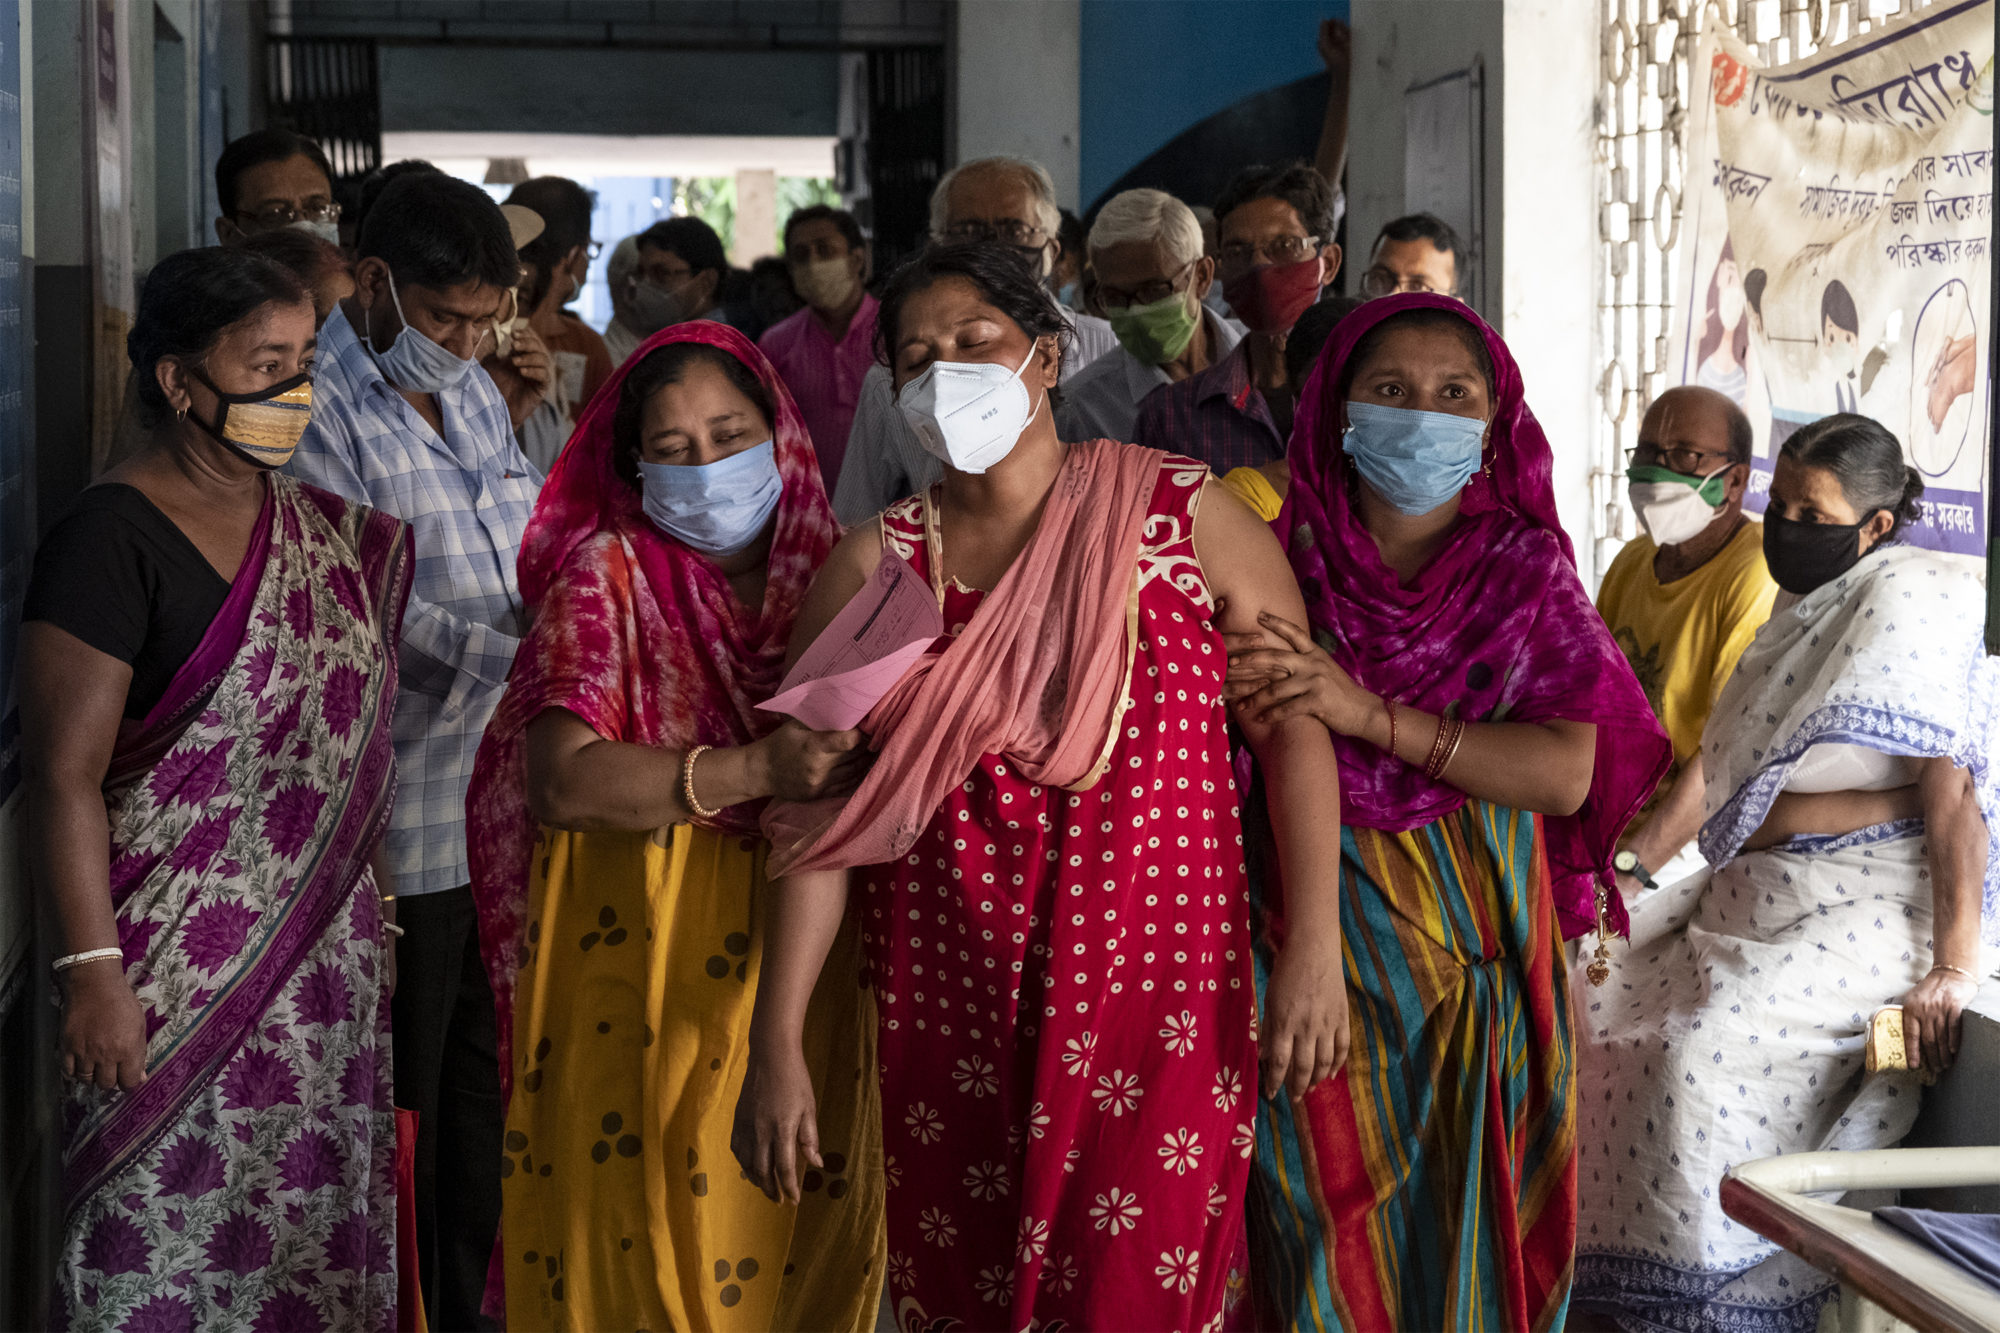 crowd of citizens with medical face masks ushering a woman through a hallway